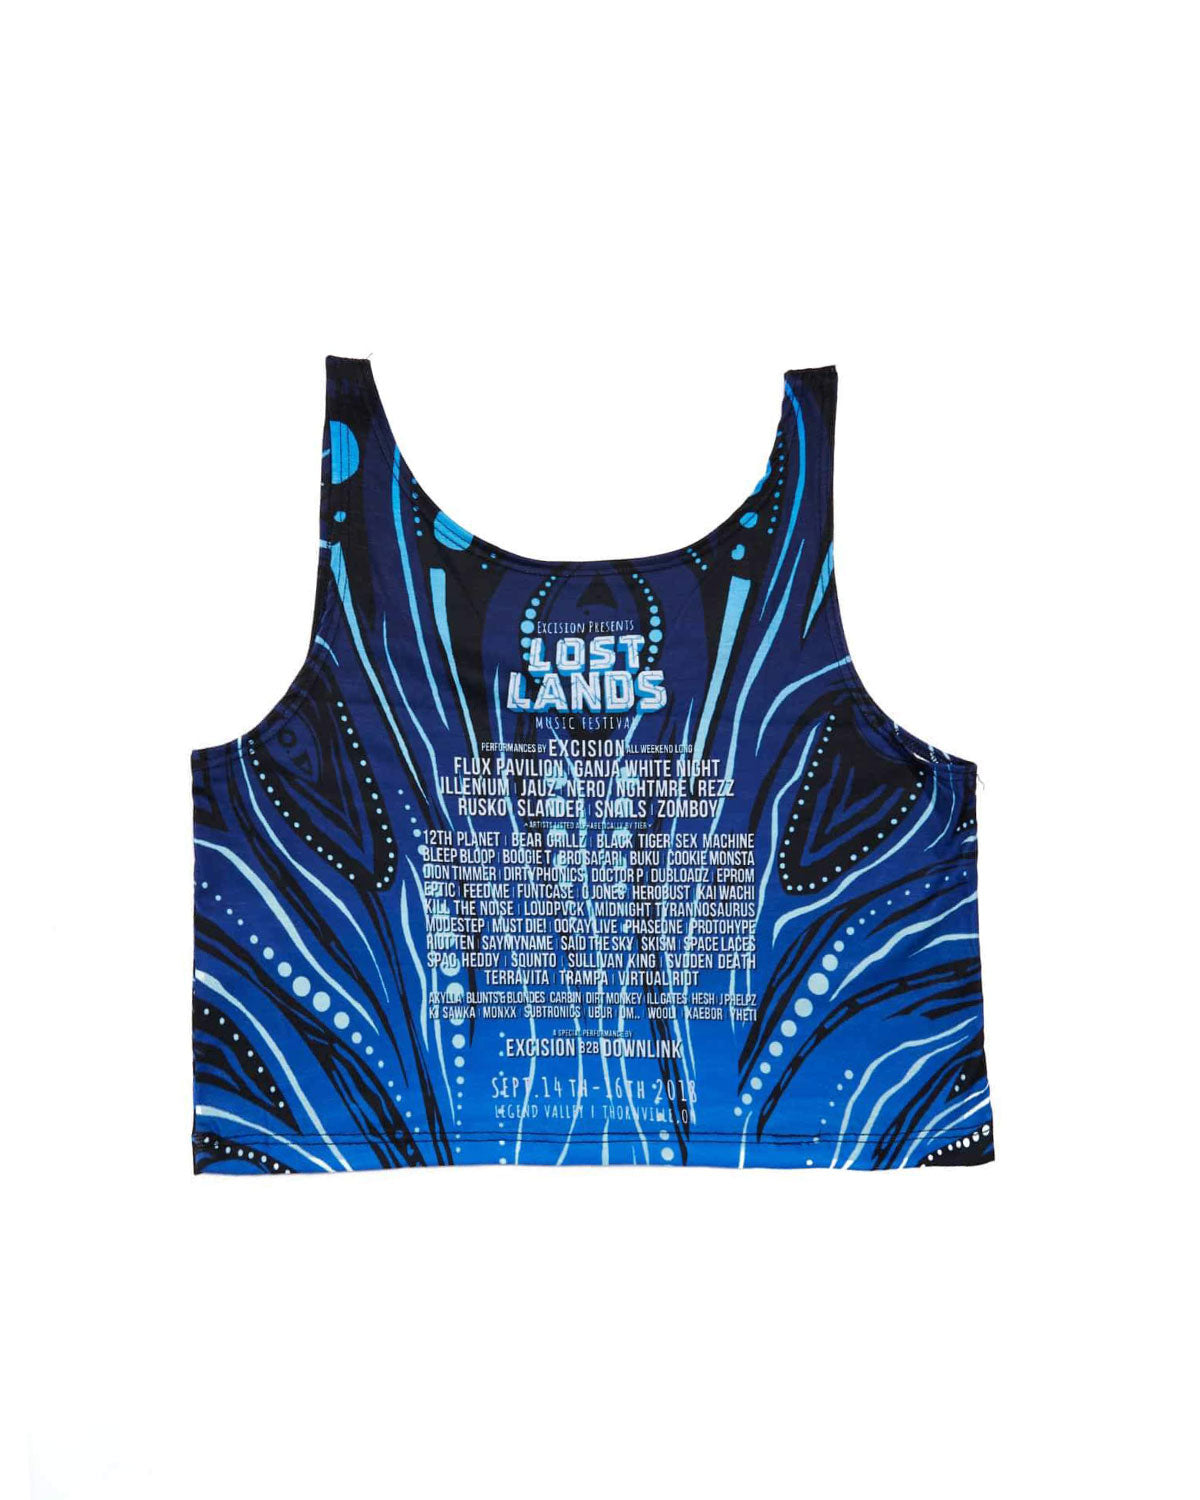 Lost Lands 'Crop Circle' Women's Dye Sub Crop Top (Blue)